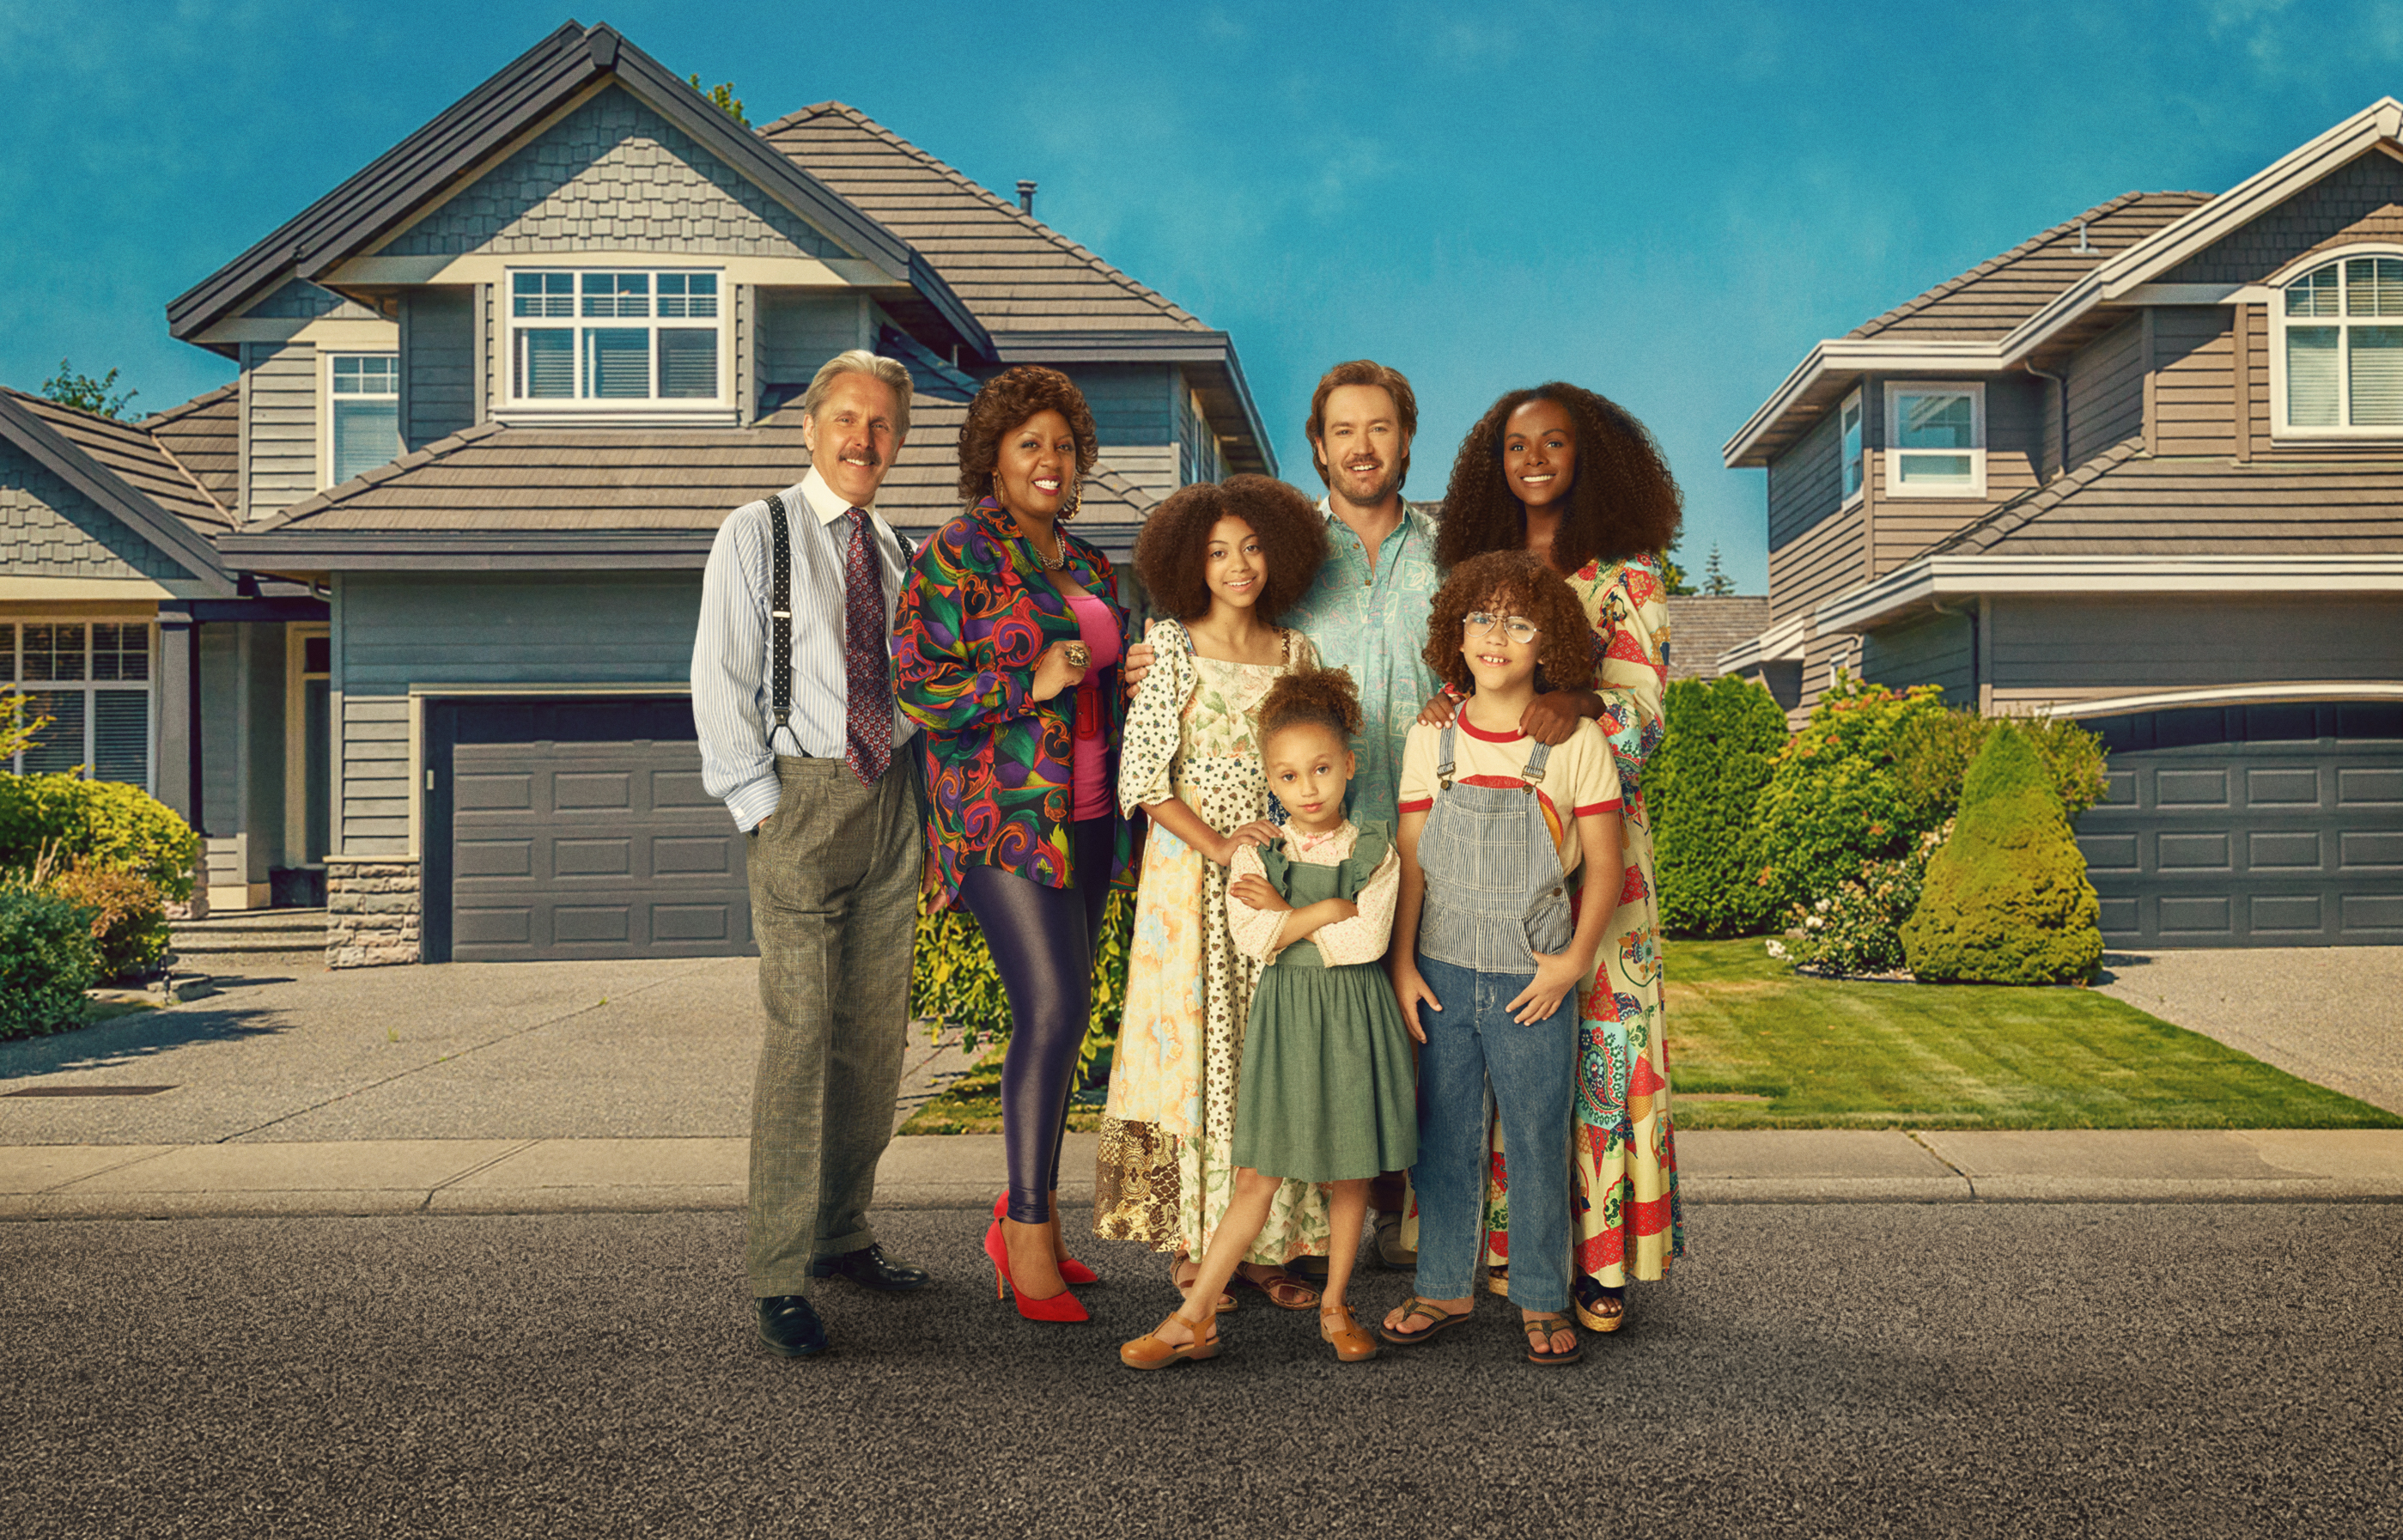 In comedy form, TV ponders being biracial